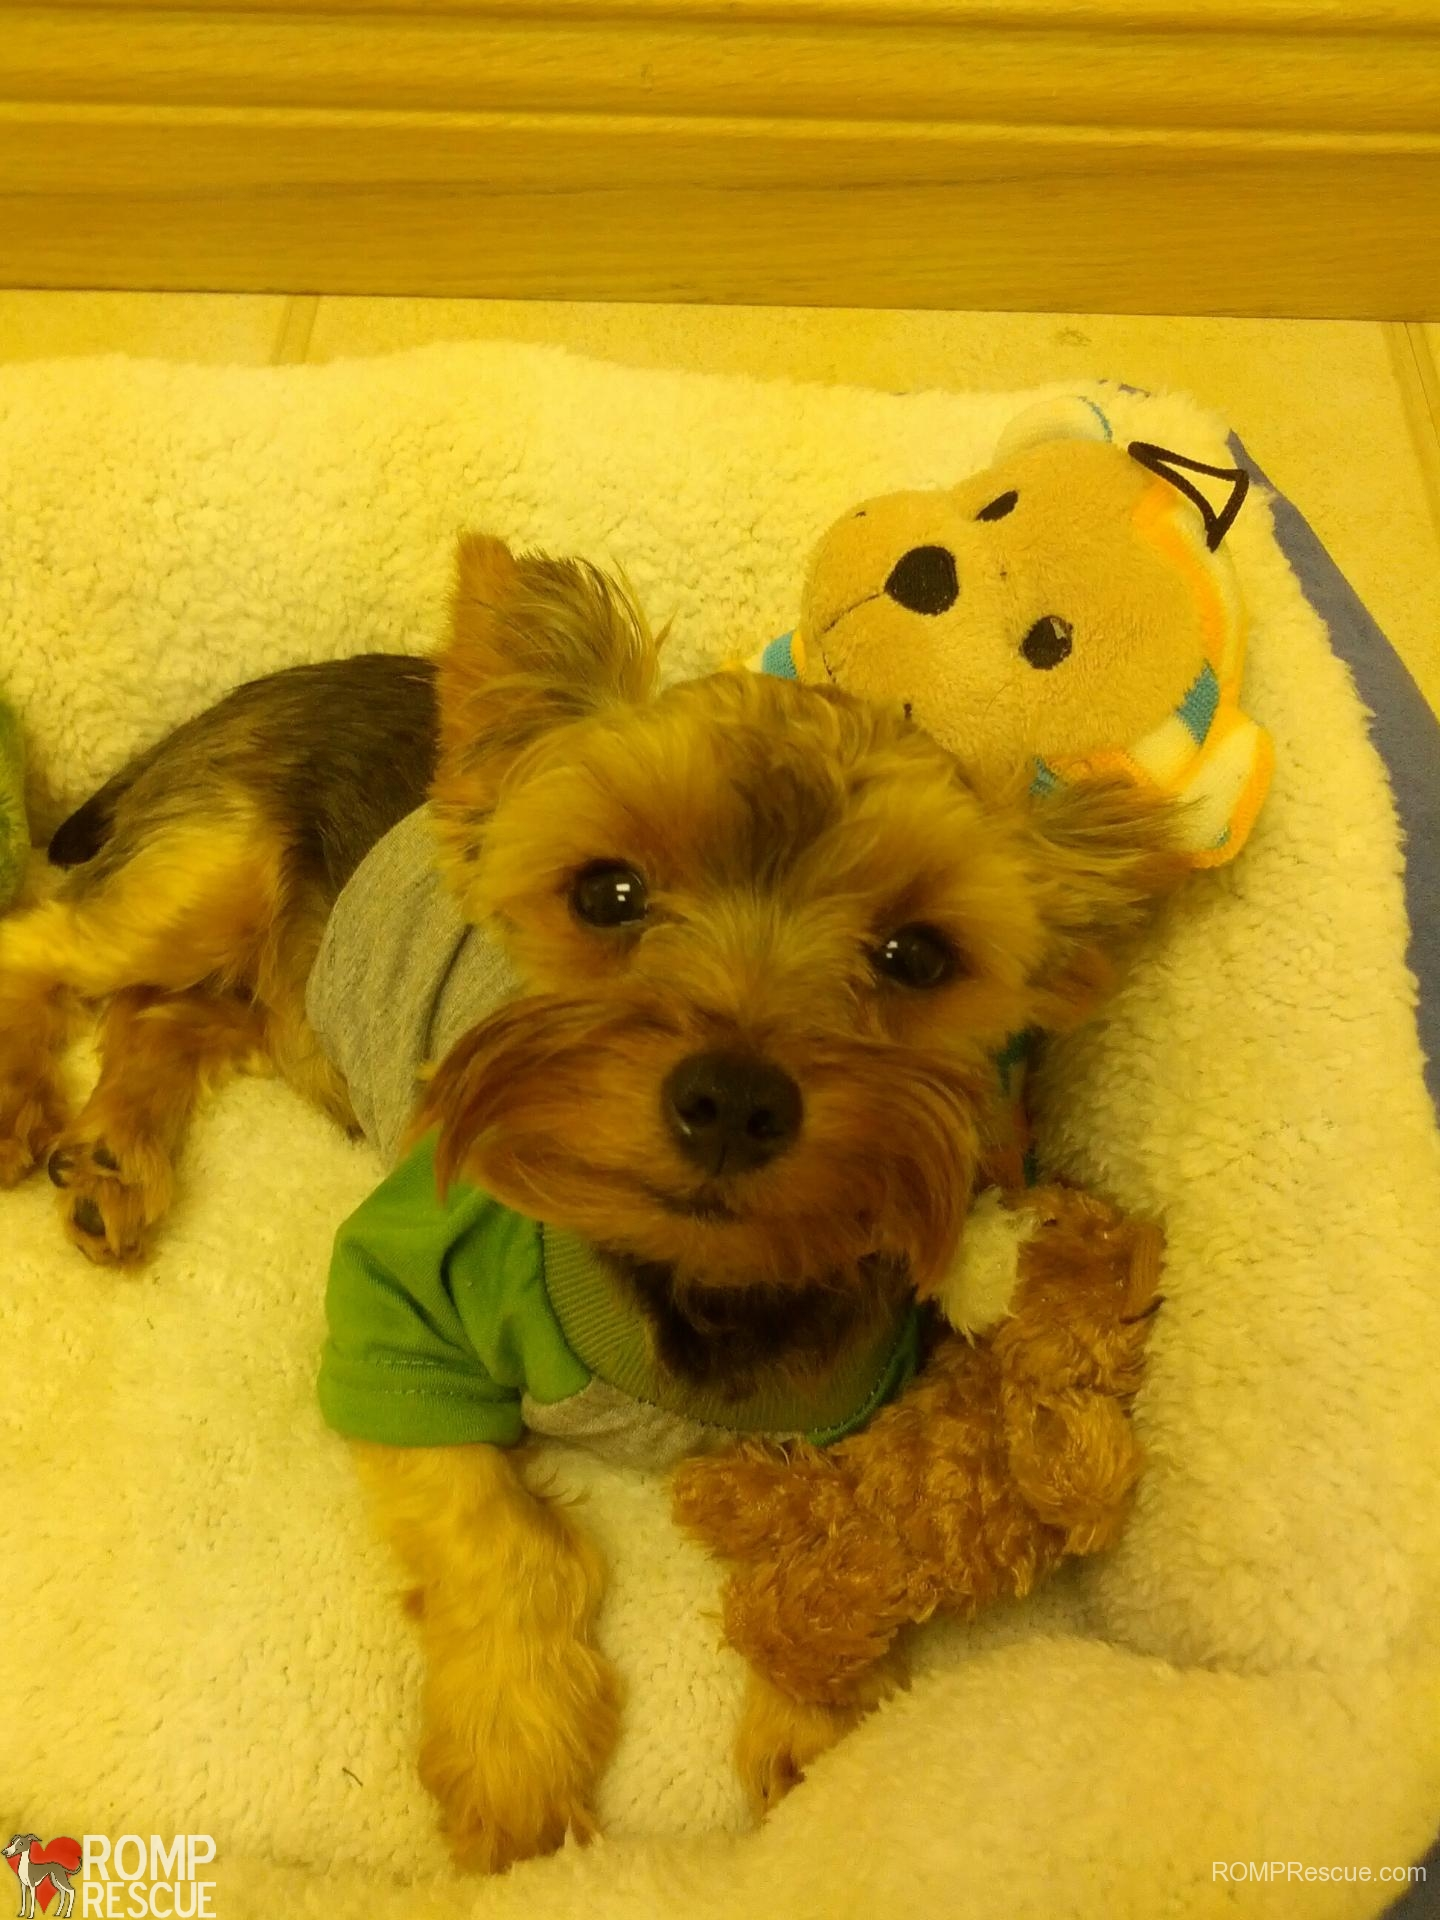 Chicago Yorkie Rescue, Chicago teacup yorkies, teacup yorkies, chicago, yorkie, yorkies, teacup, tea cup, puppy, puppies, rescue, adopt, available, shelter